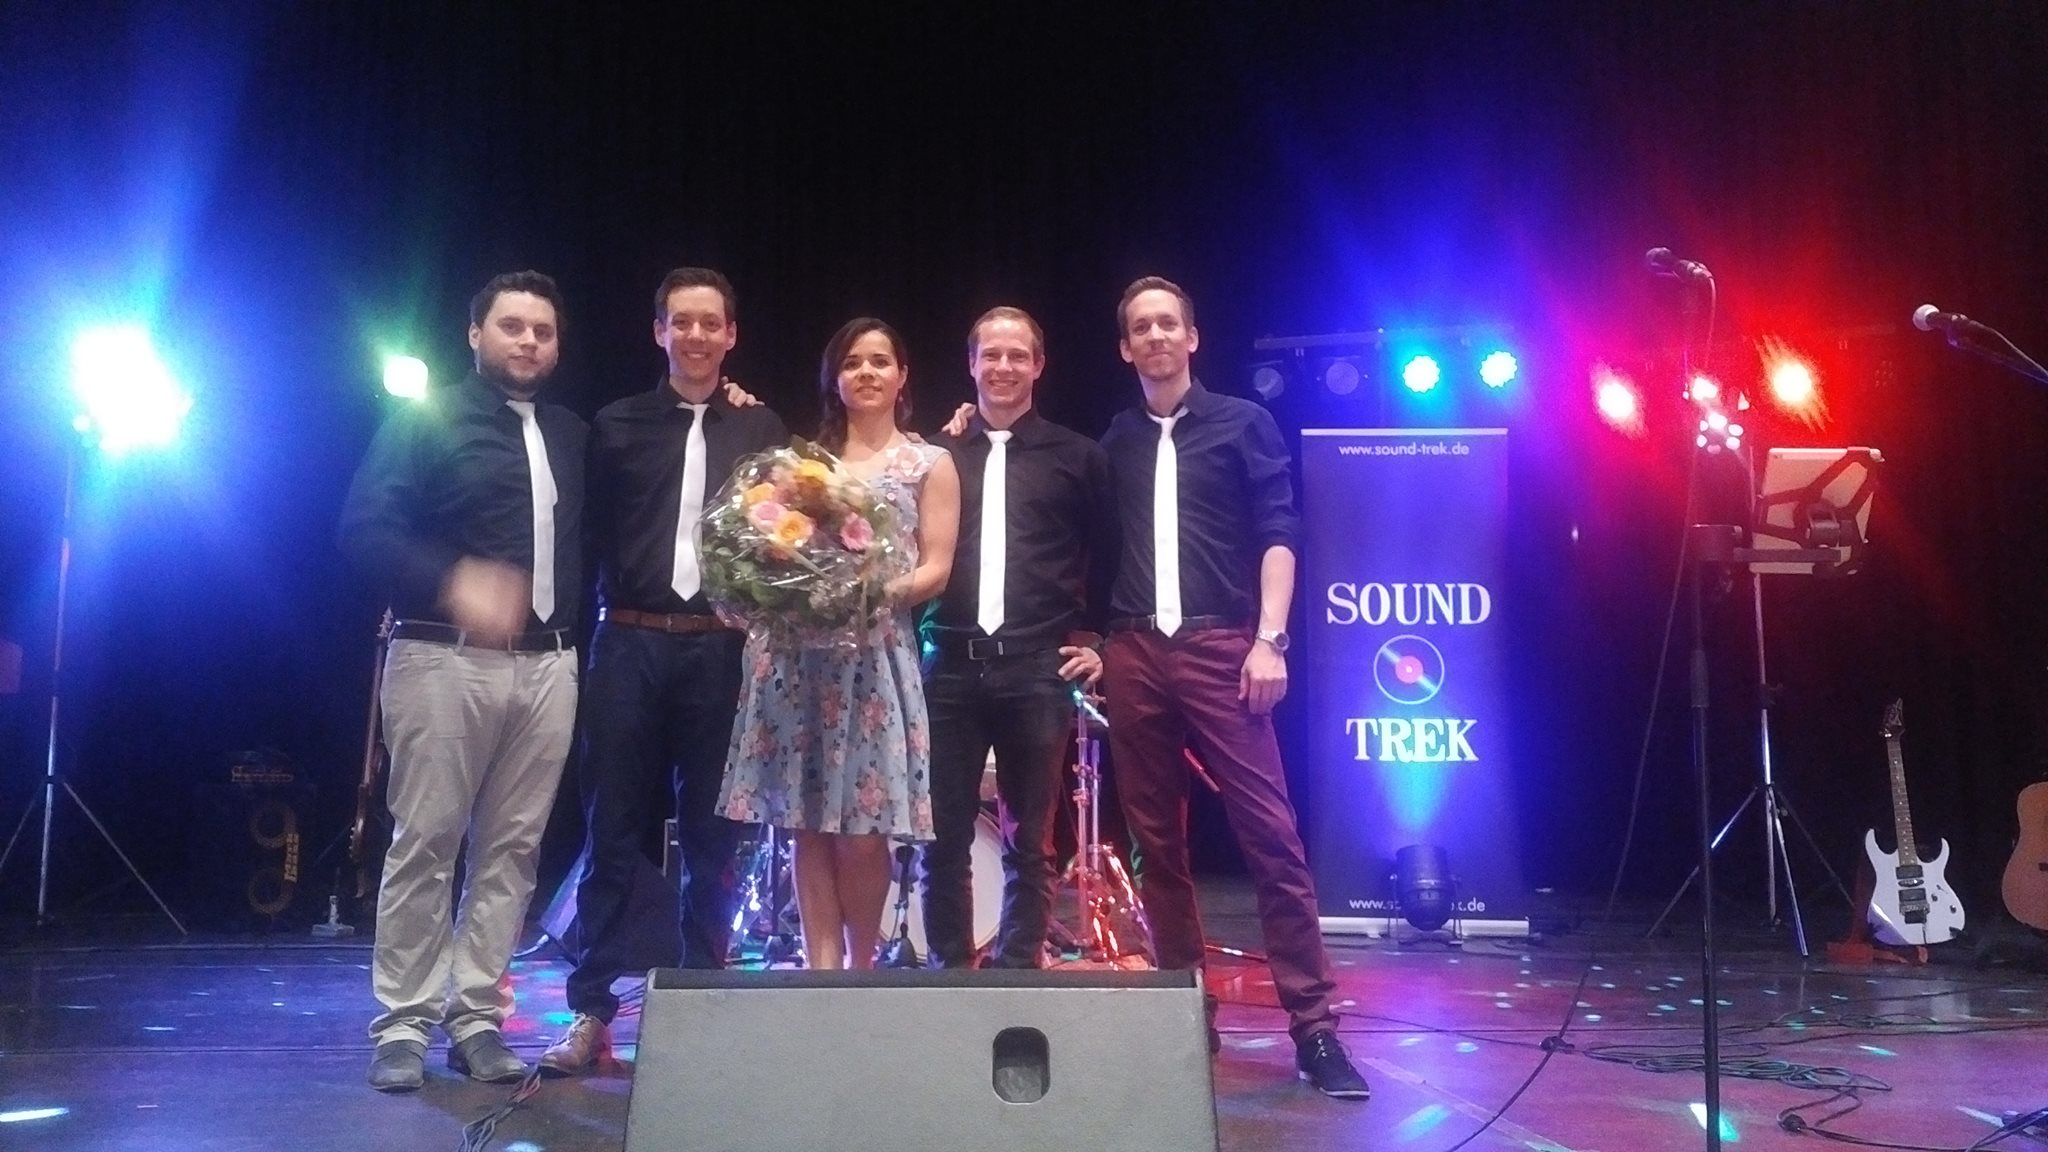 Sound Trek Firmenfeier